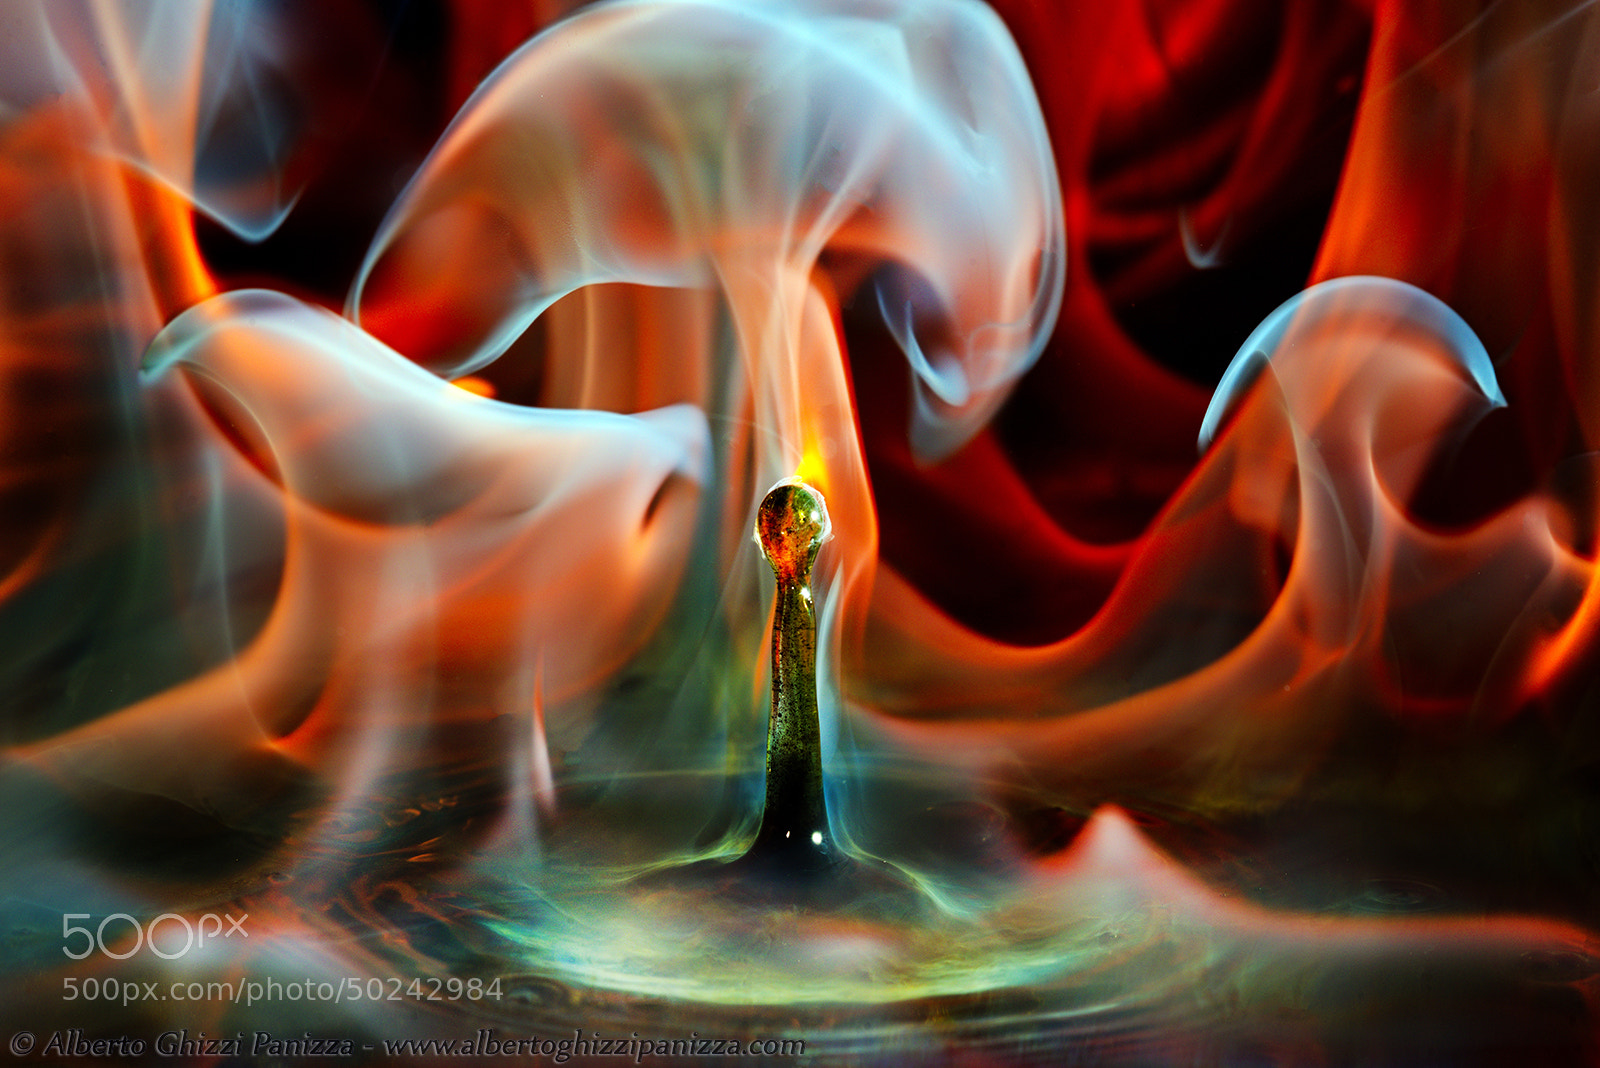 Photograph Burning Drop by Alberto Ghizzi Panizza on 500px